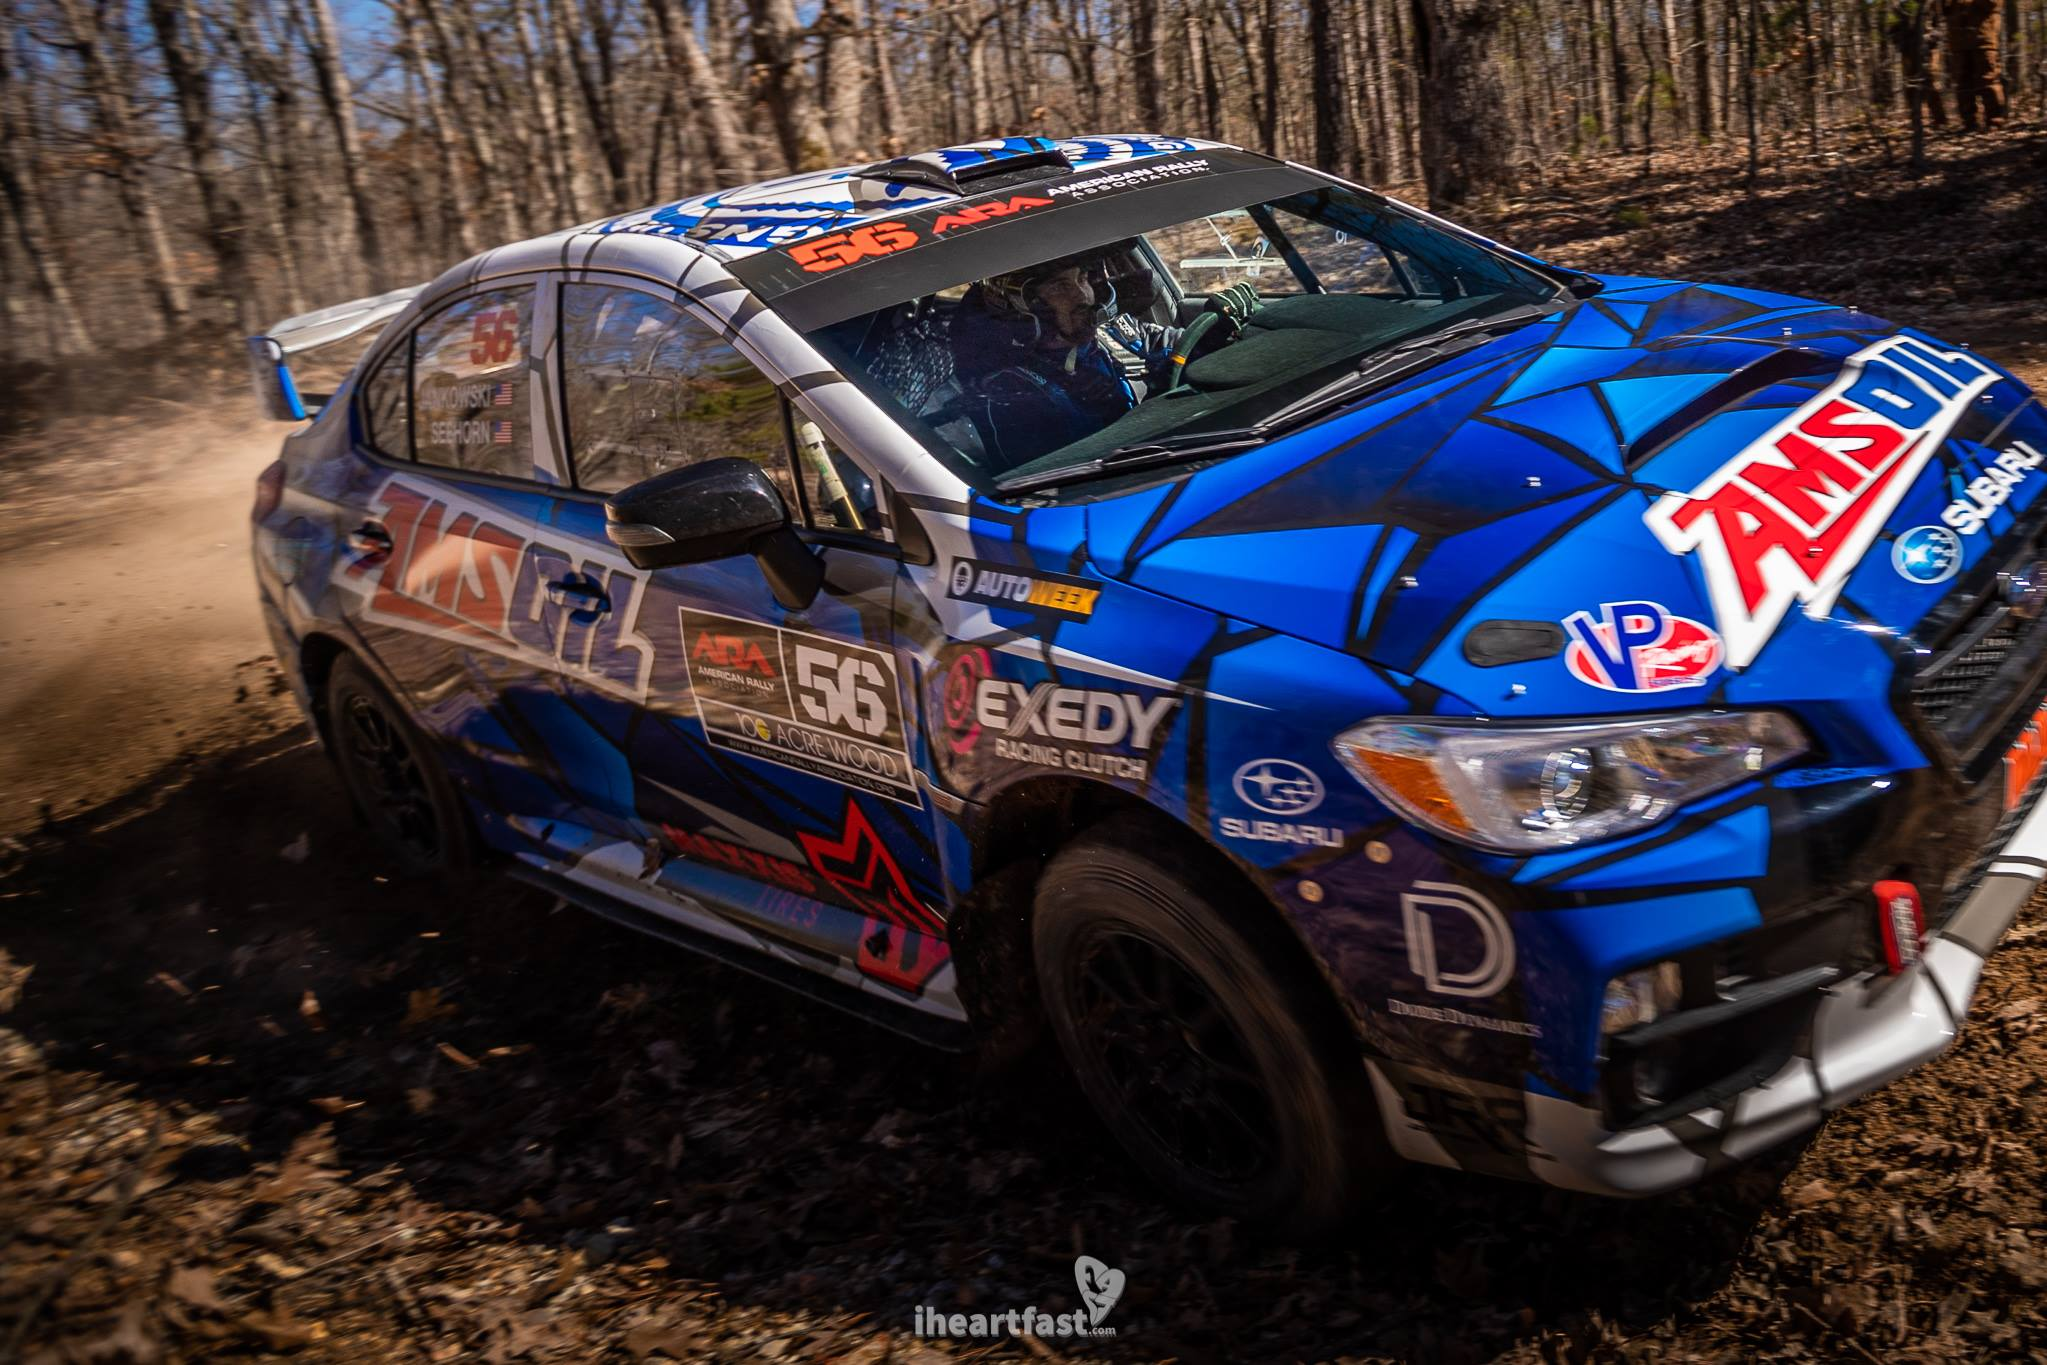 Seehorn Rally Team at 100 Acre Wood